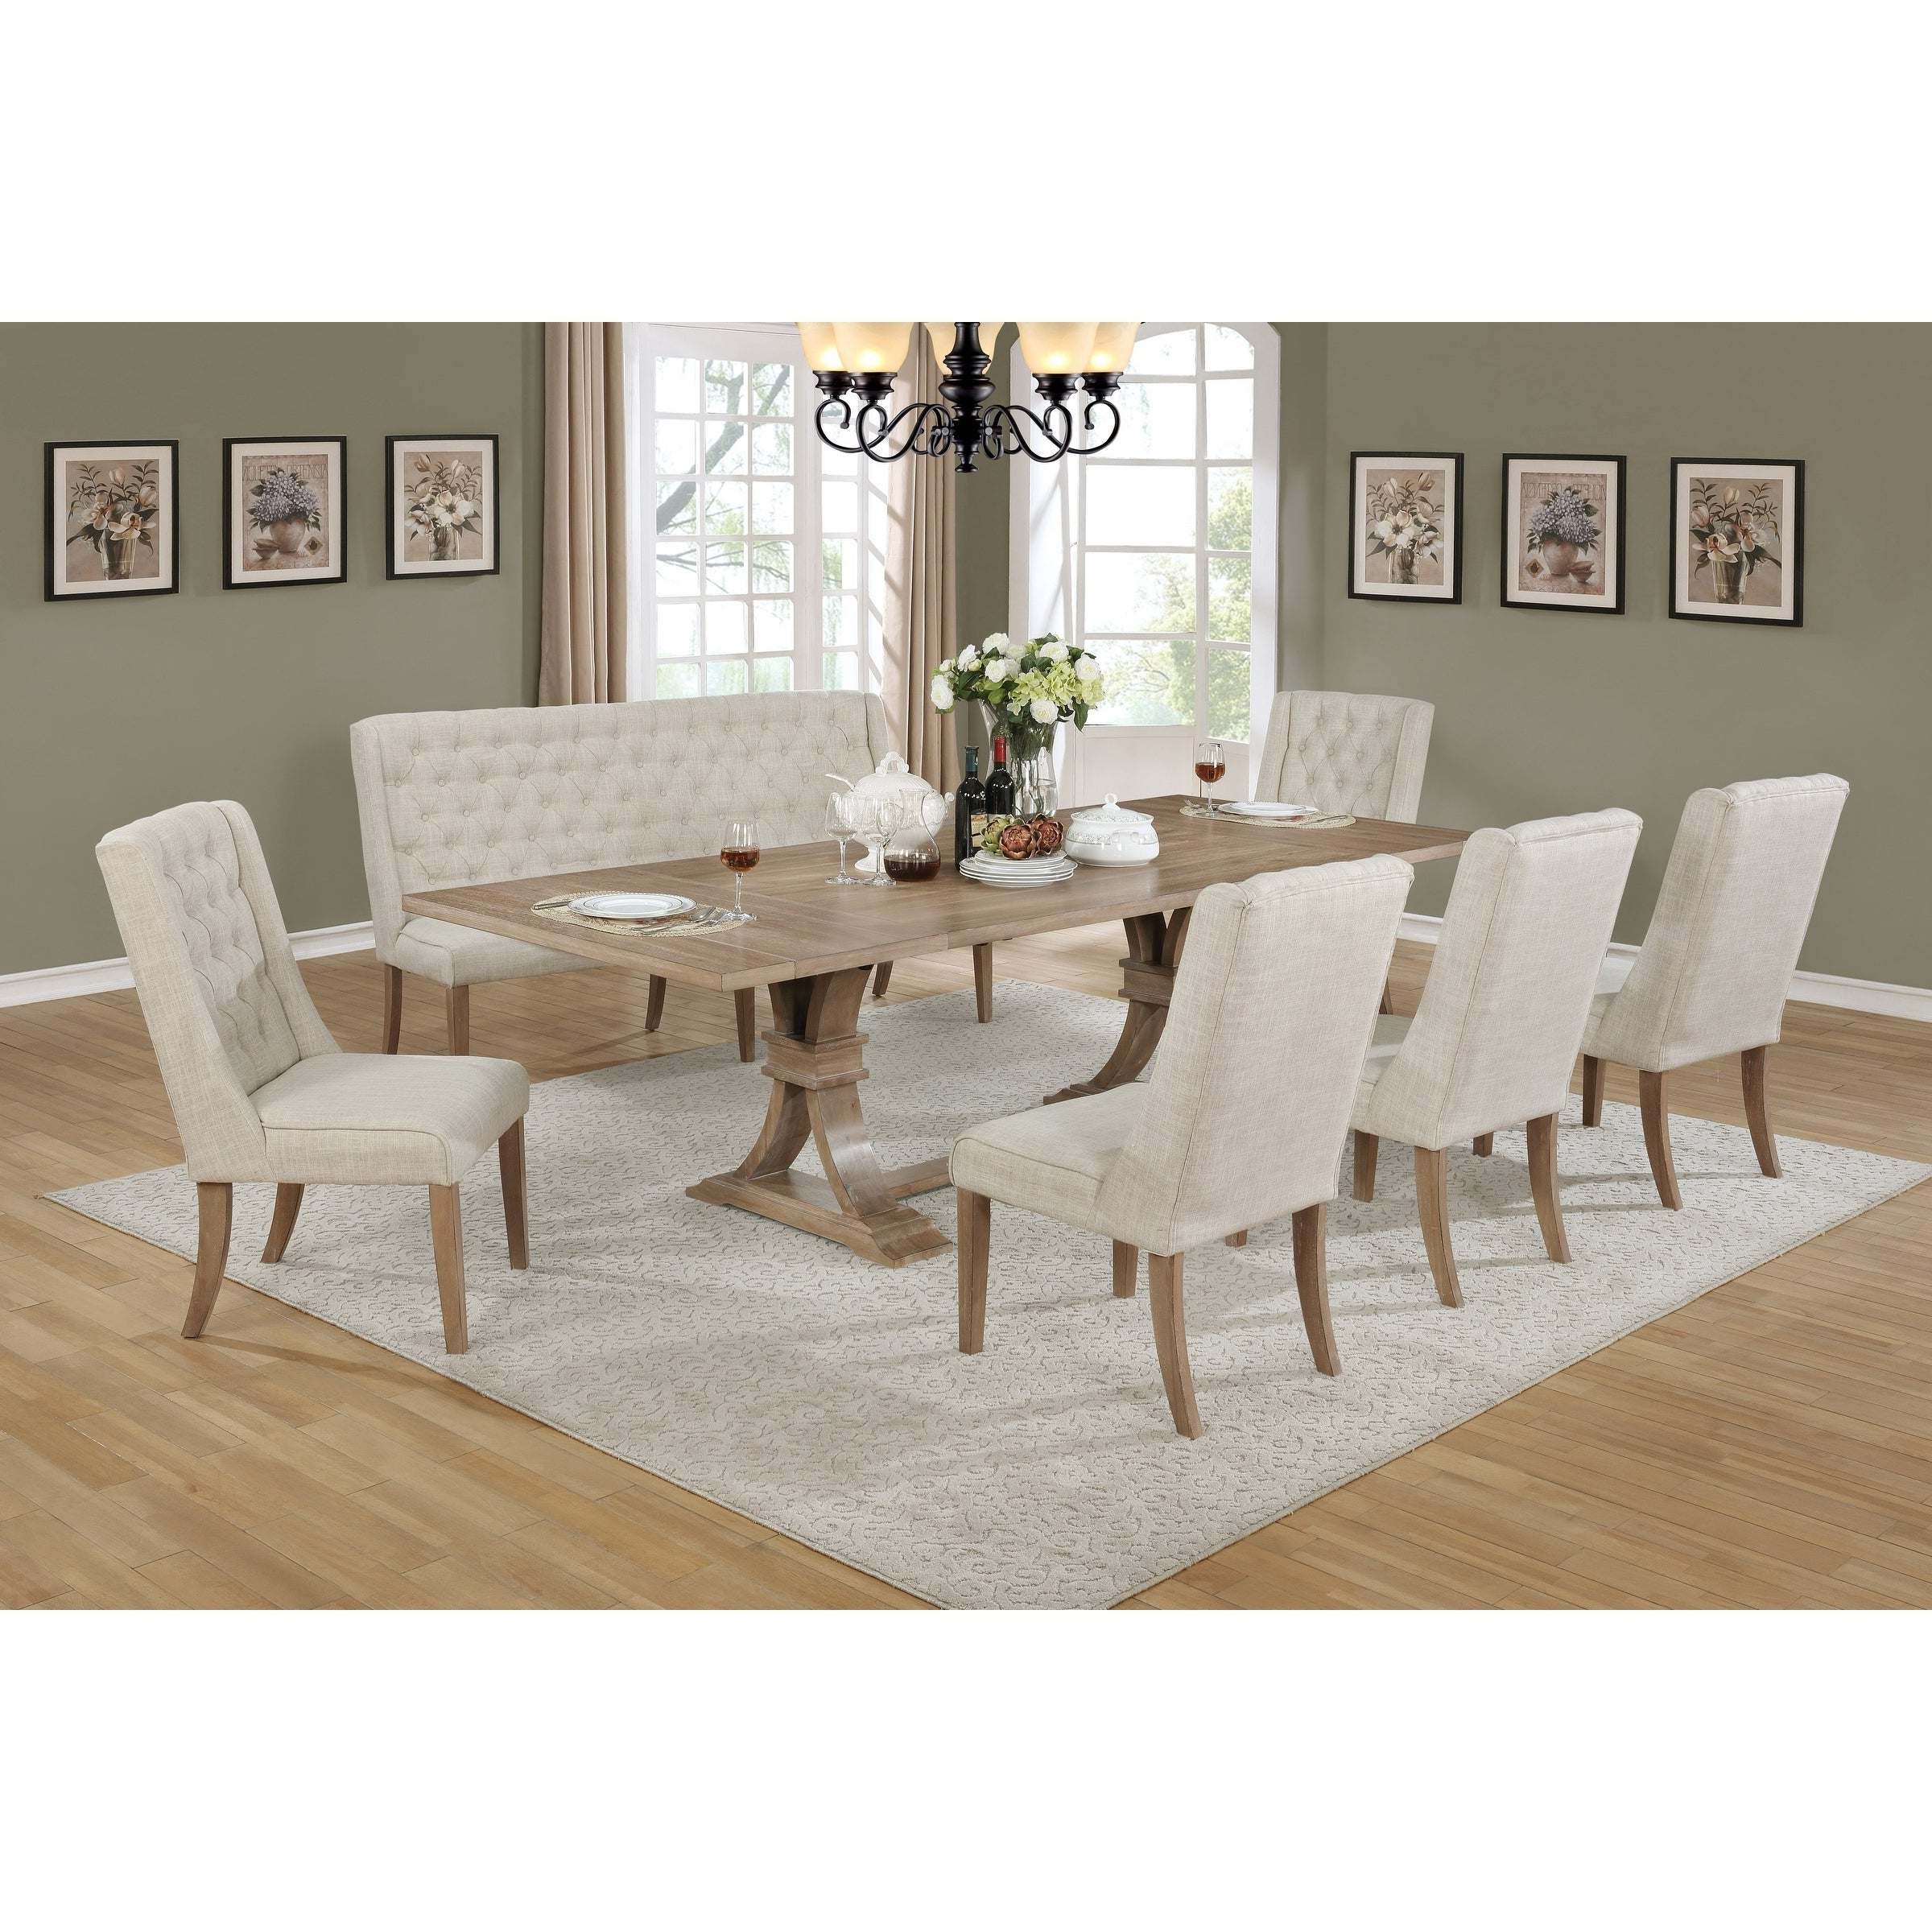 Autberry 5 Piece Dining Sets With Regard To Well Known Buy 7 Piece Sets Kitchen & Dining Room Sets Online At Overstock (View 6 of 25)